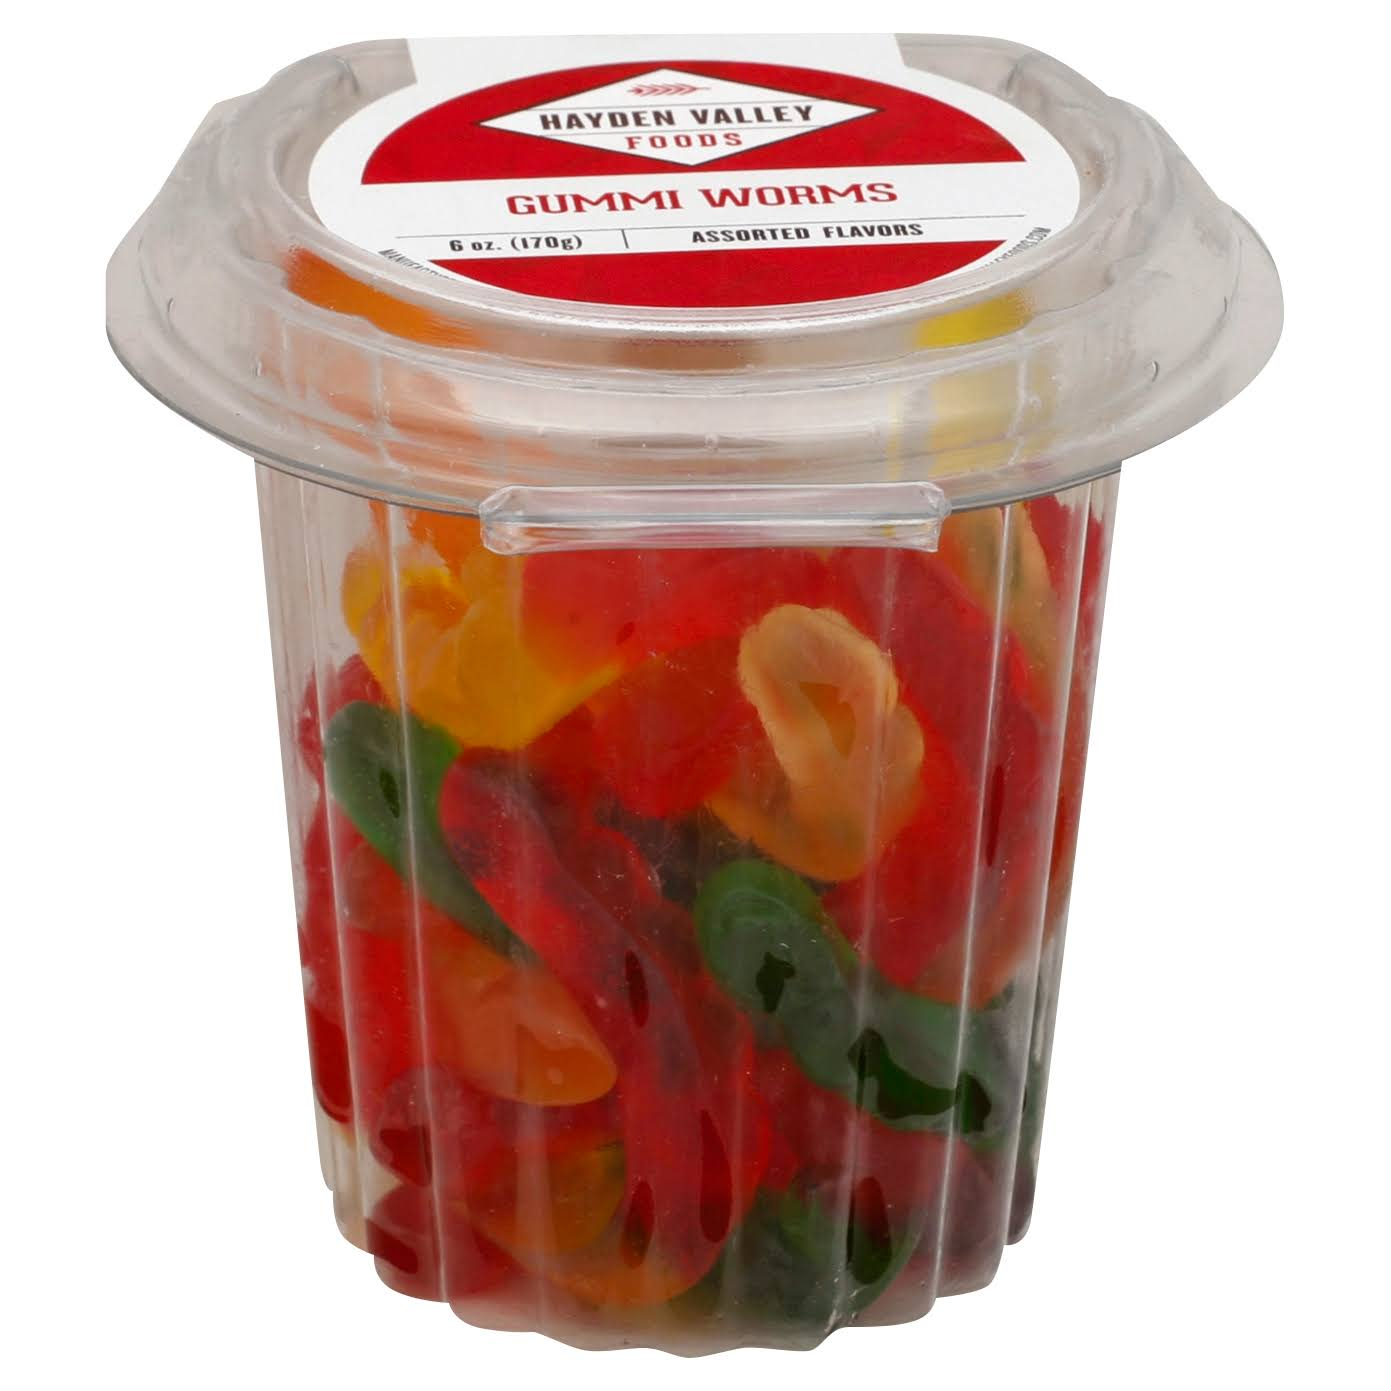 Hayden Valley Gummi Worms, Assorted Flavors - 6 oz